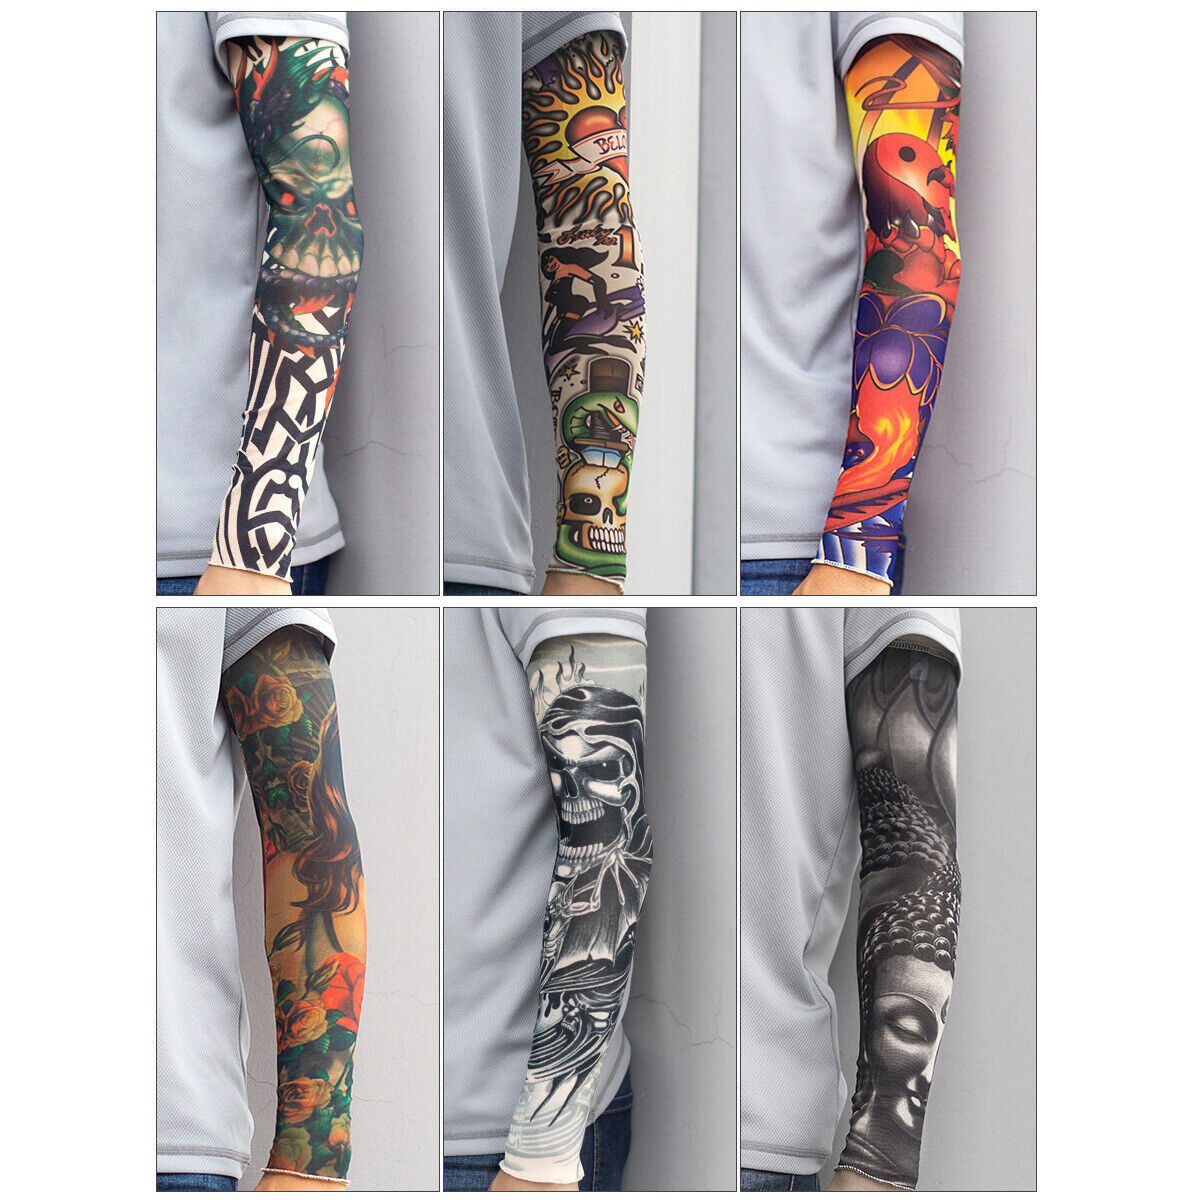 6pcs Skull Tattoo Arm Sleeves Cover Basketball Outdoor Sport UV Sun Protection Basketball